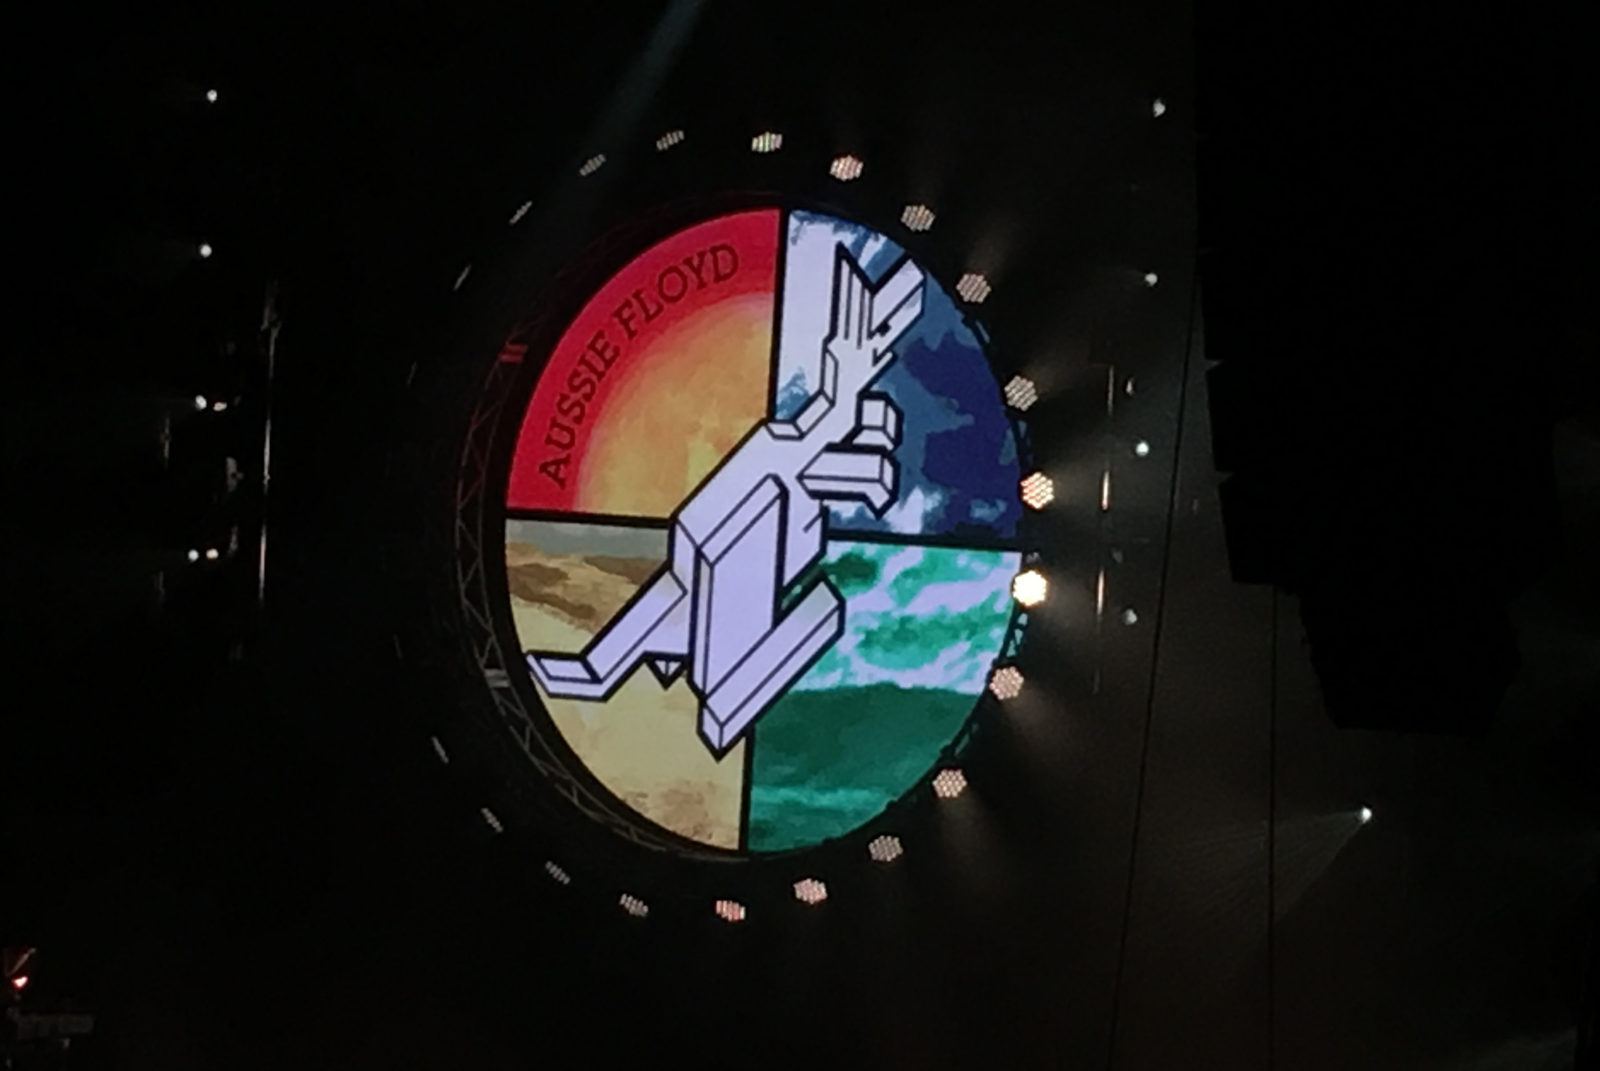 Concert Review: The Australian Pink Floyd Show – Hard Rock Live in Hollywood, Fl 8-25-16